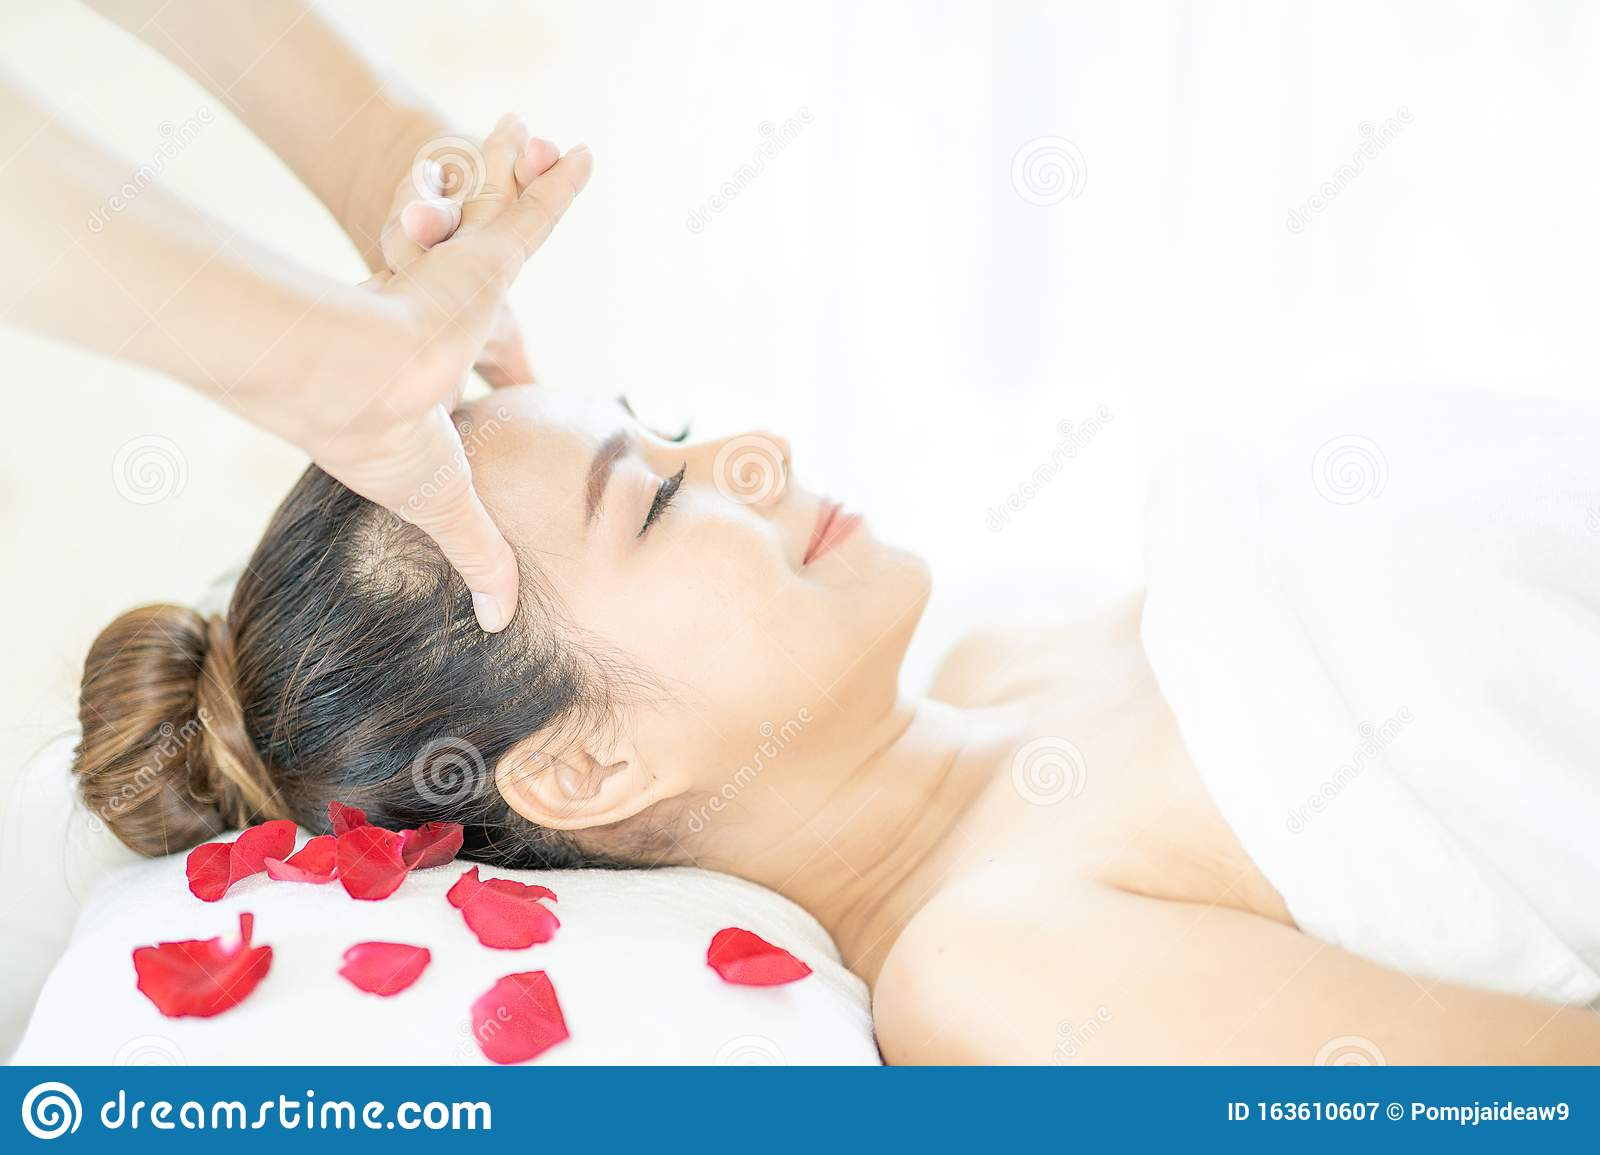 Facial Massage Spa Massage Relaxing Facial Massage At Spa Salon Happy Young Beautiful Woman Enjoying Head Massage At The Spa Stock Image Image Of Beautiful Natural 163610607